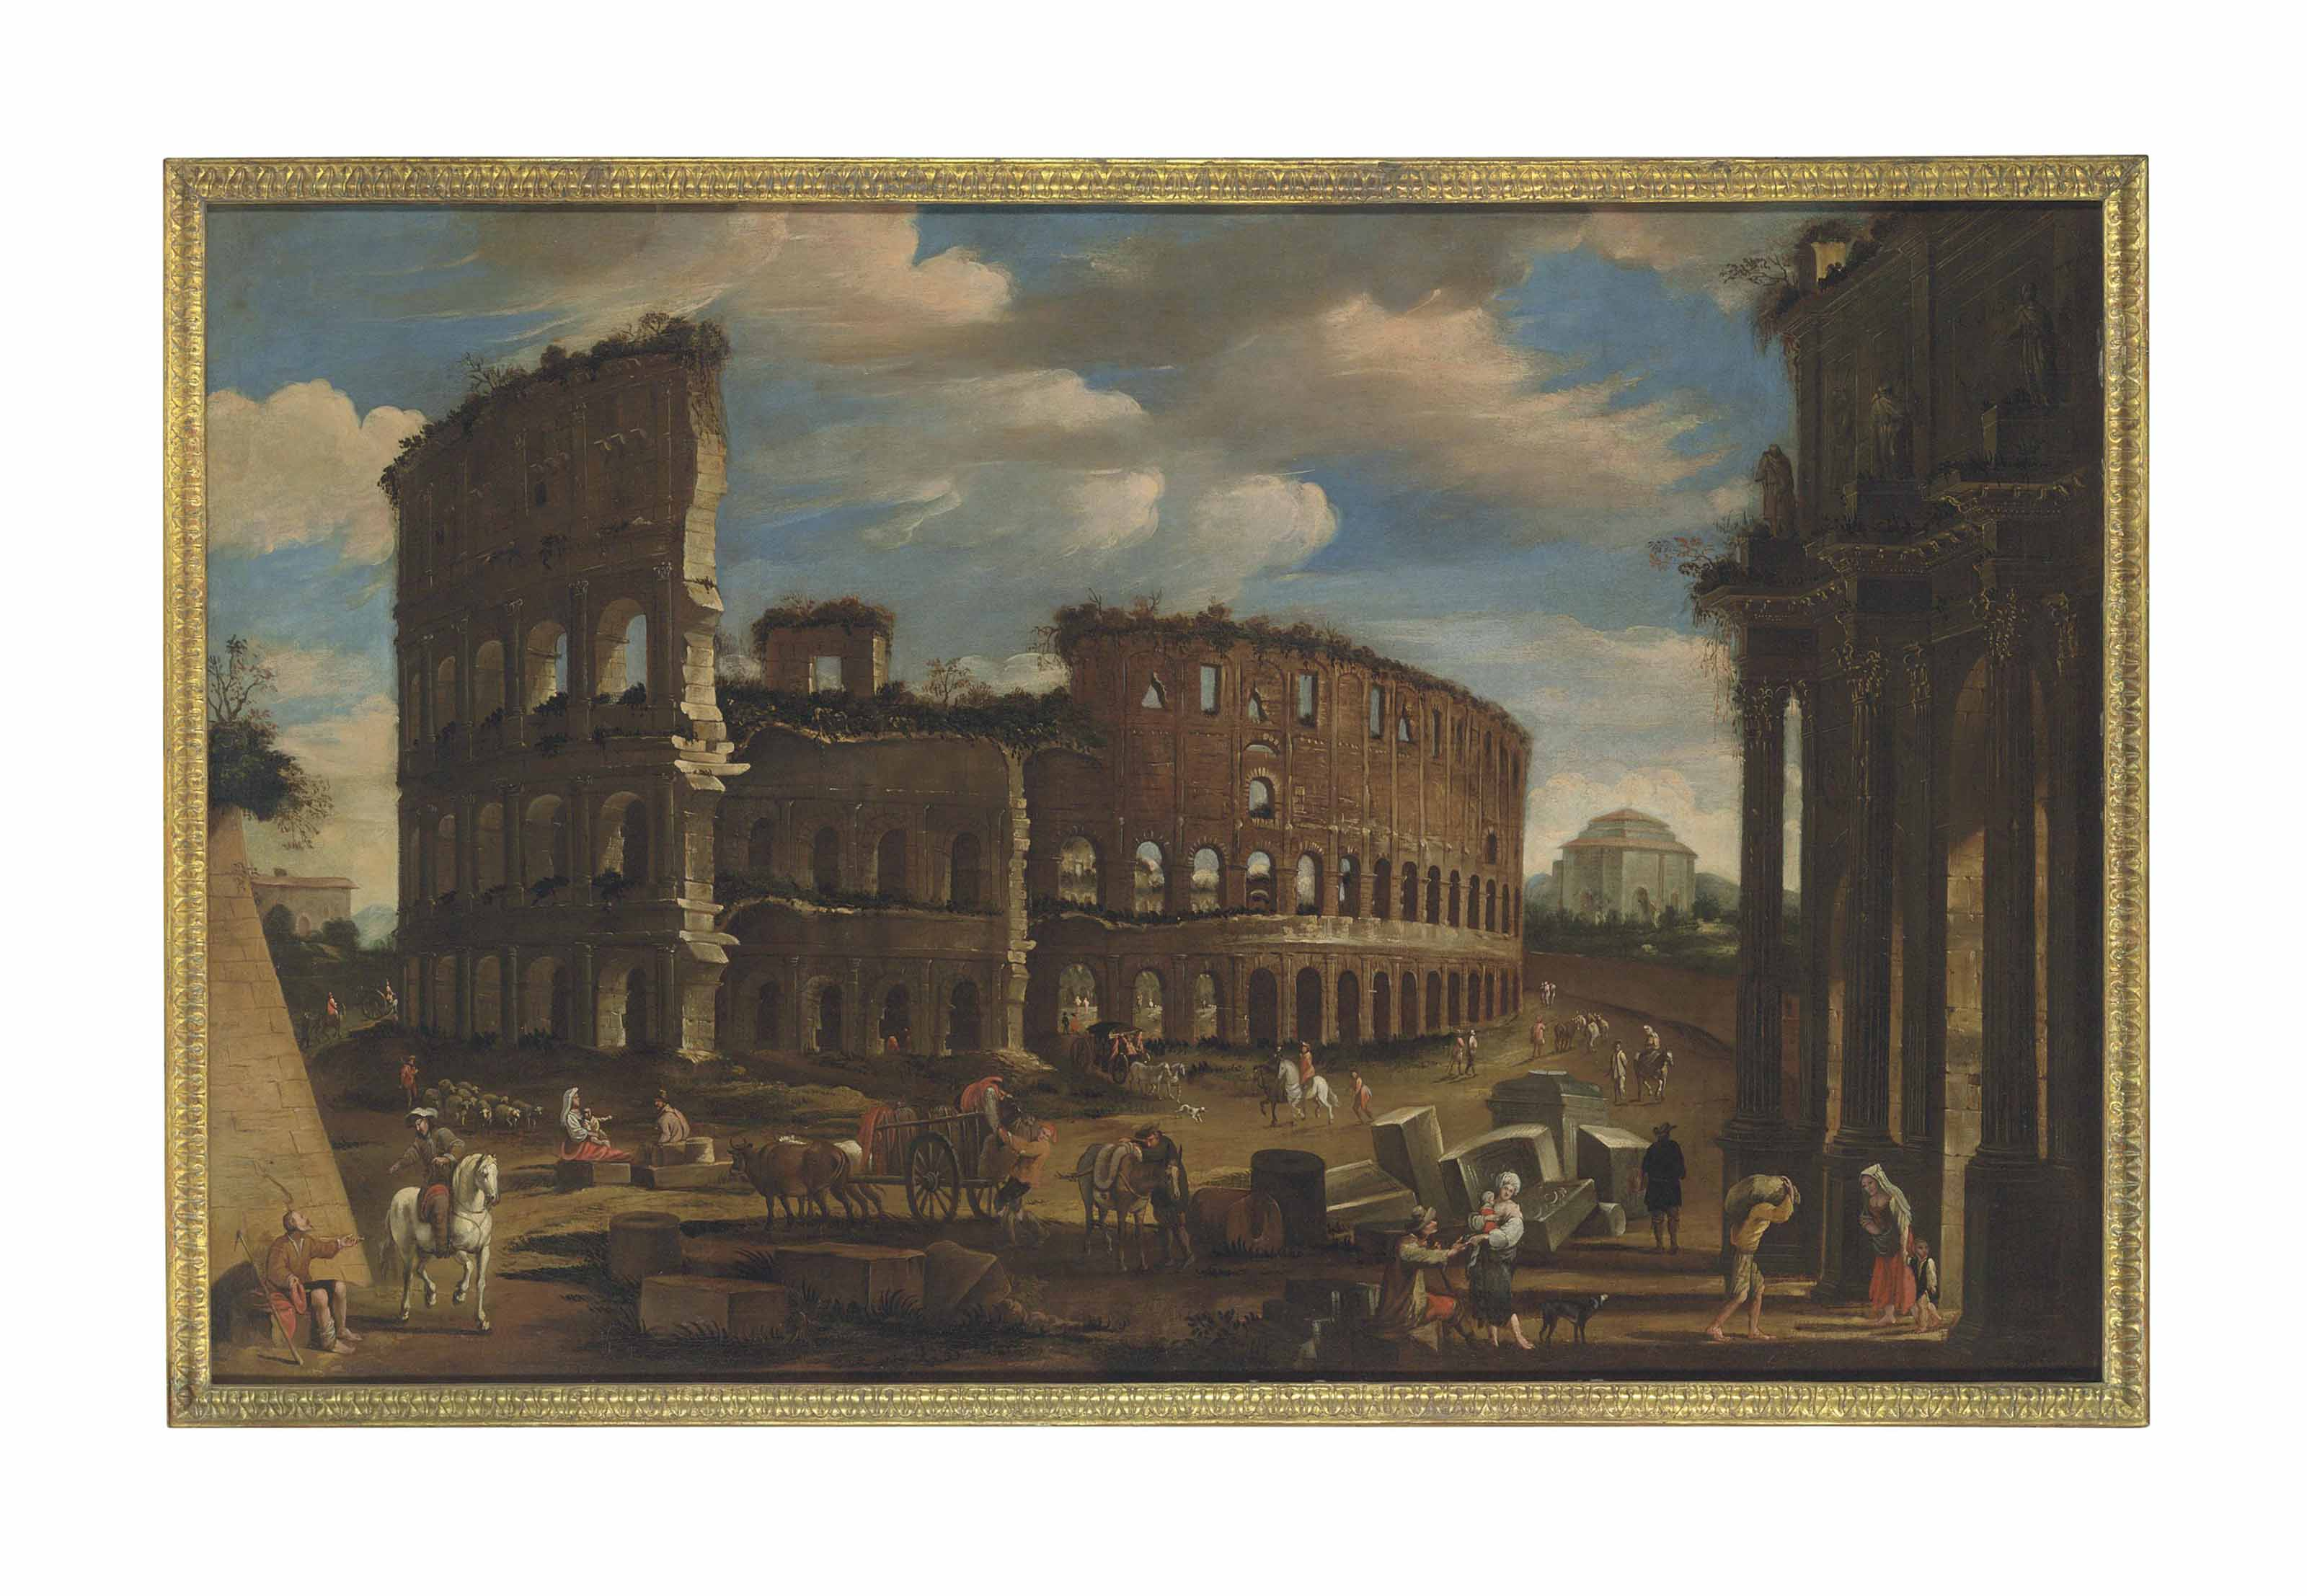 An architectural capriccio with figures bustling before the Colosseum